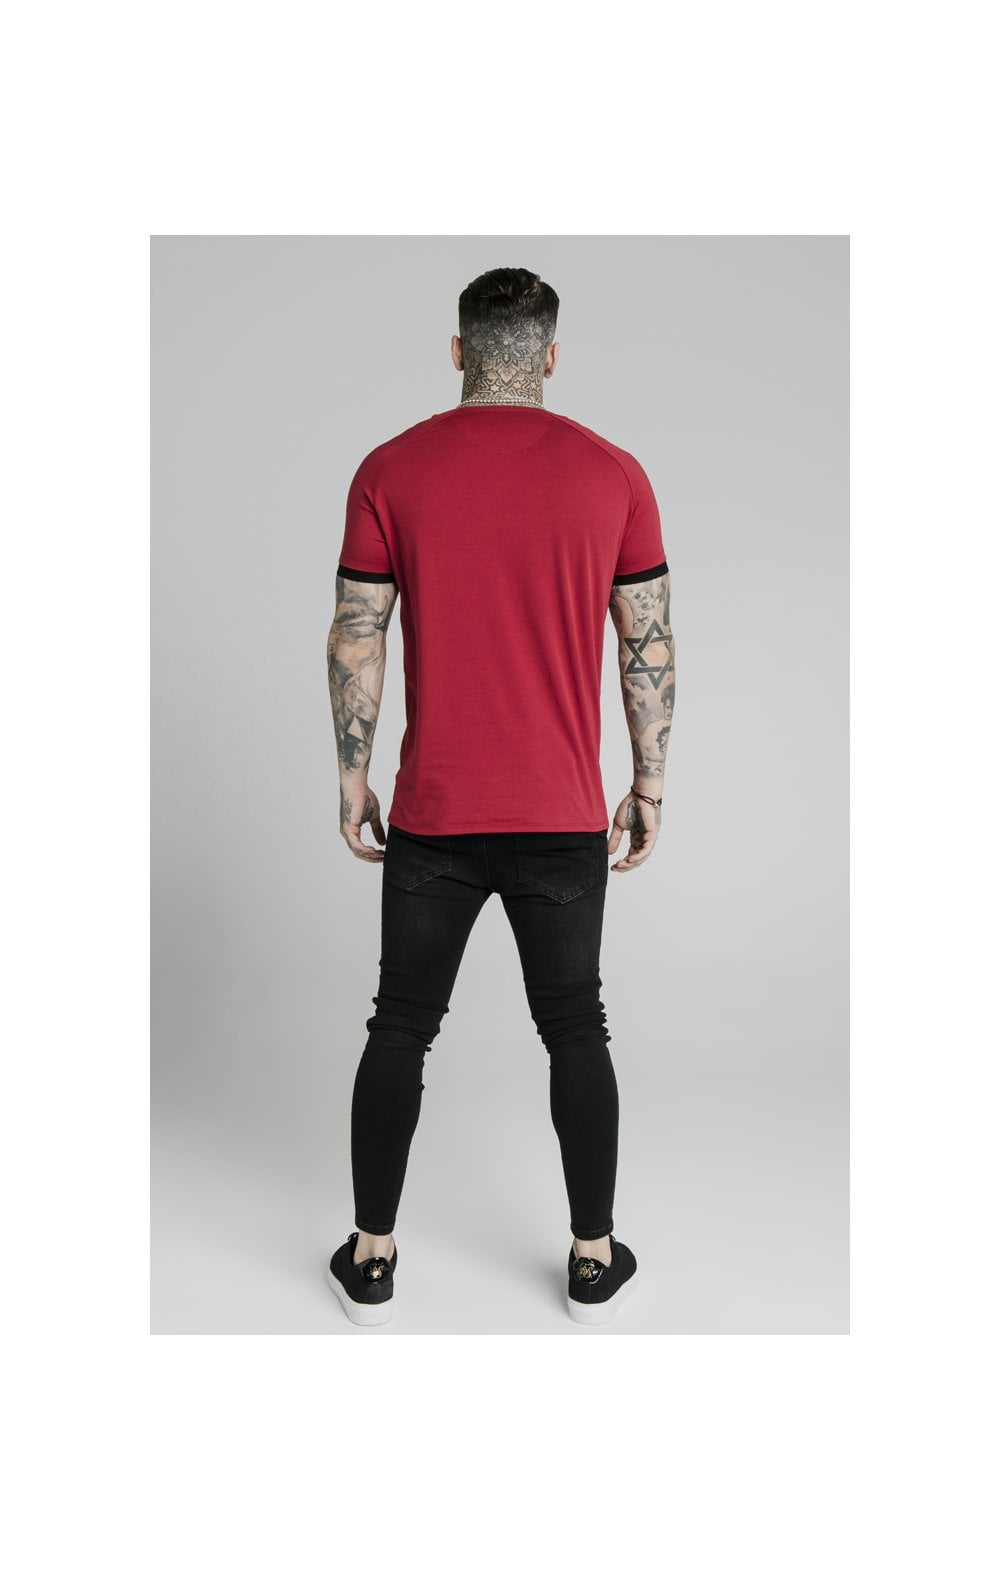 Load image into Gallery viewer, SikSilk S/S Raglan Tape Gym Tee - Red (4)